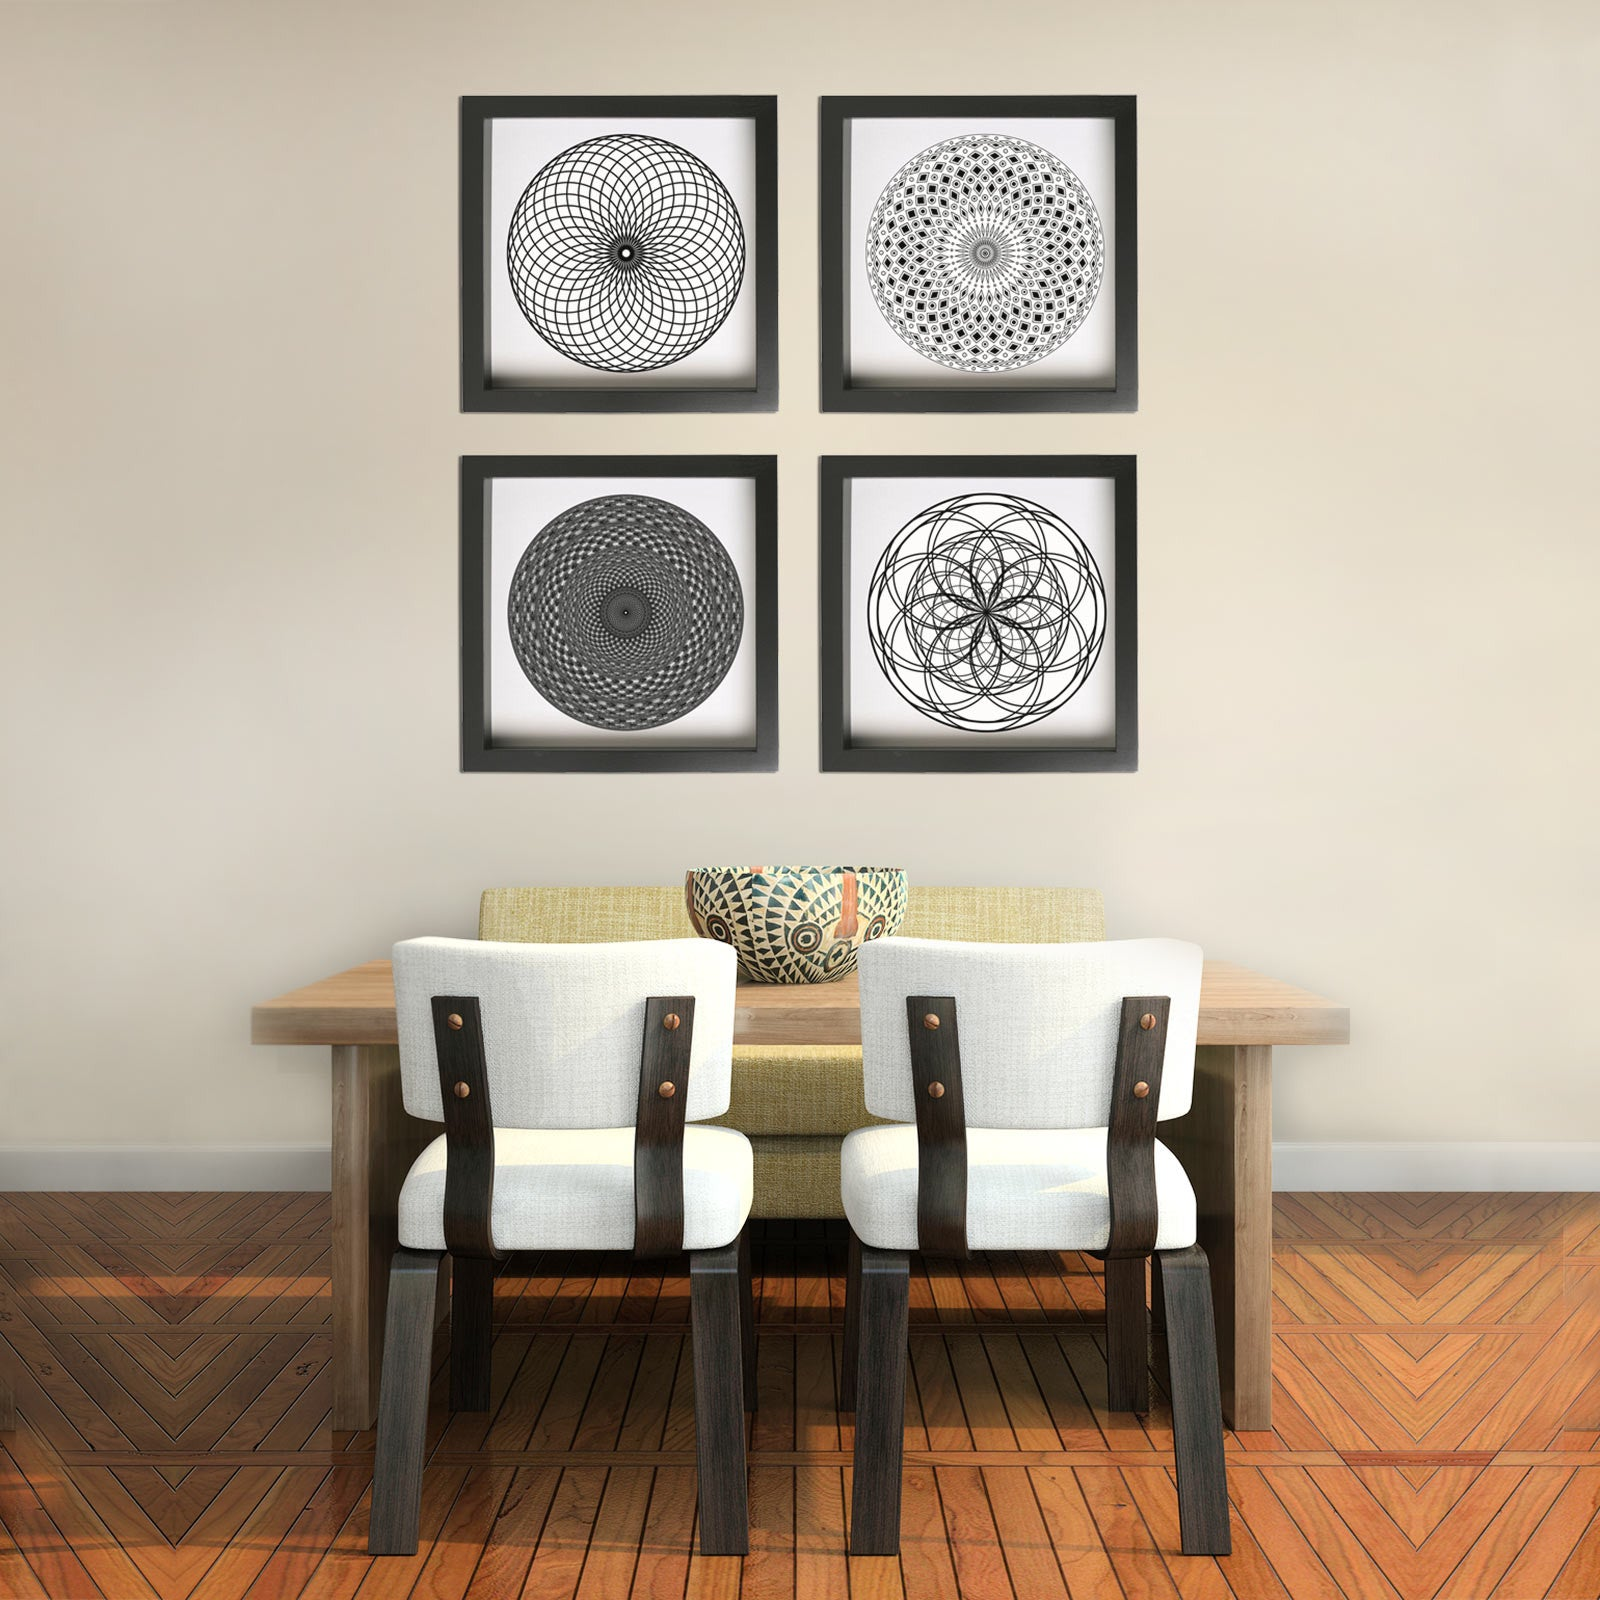 Four Piece Framed Art Print Set With Geometric Designs In Dining Room ... Part 75